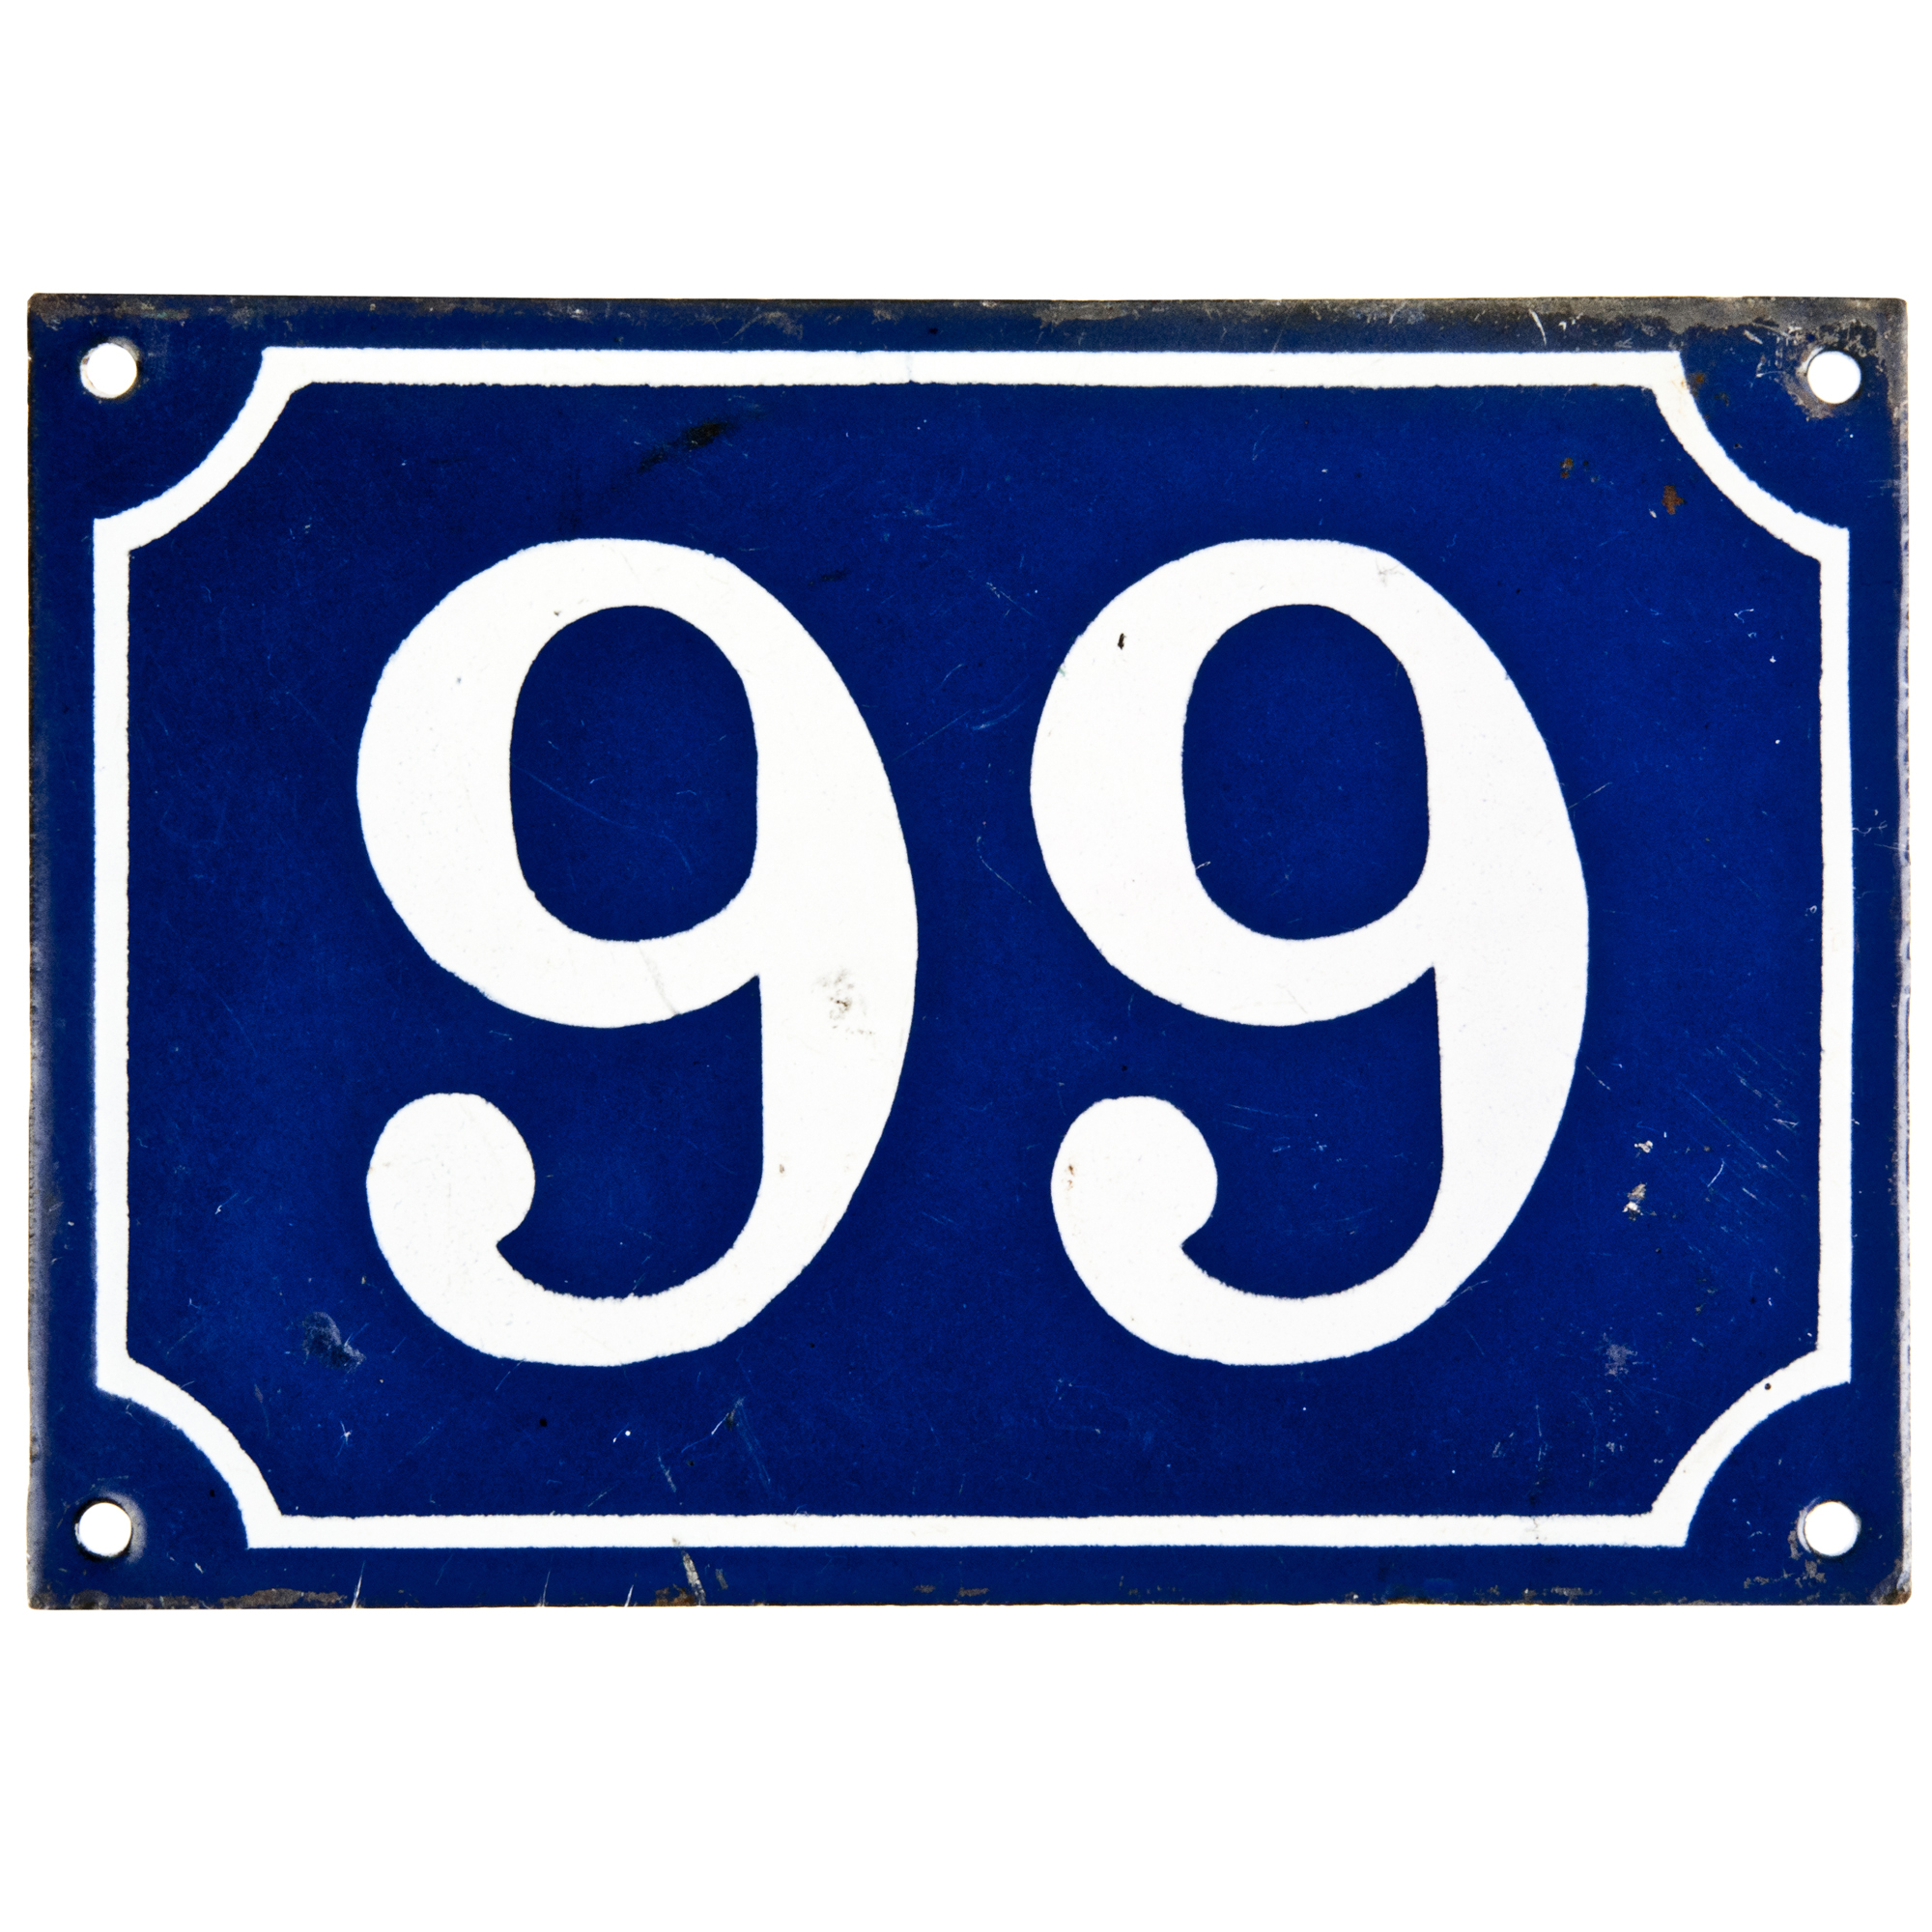 Vintage French House Number 99